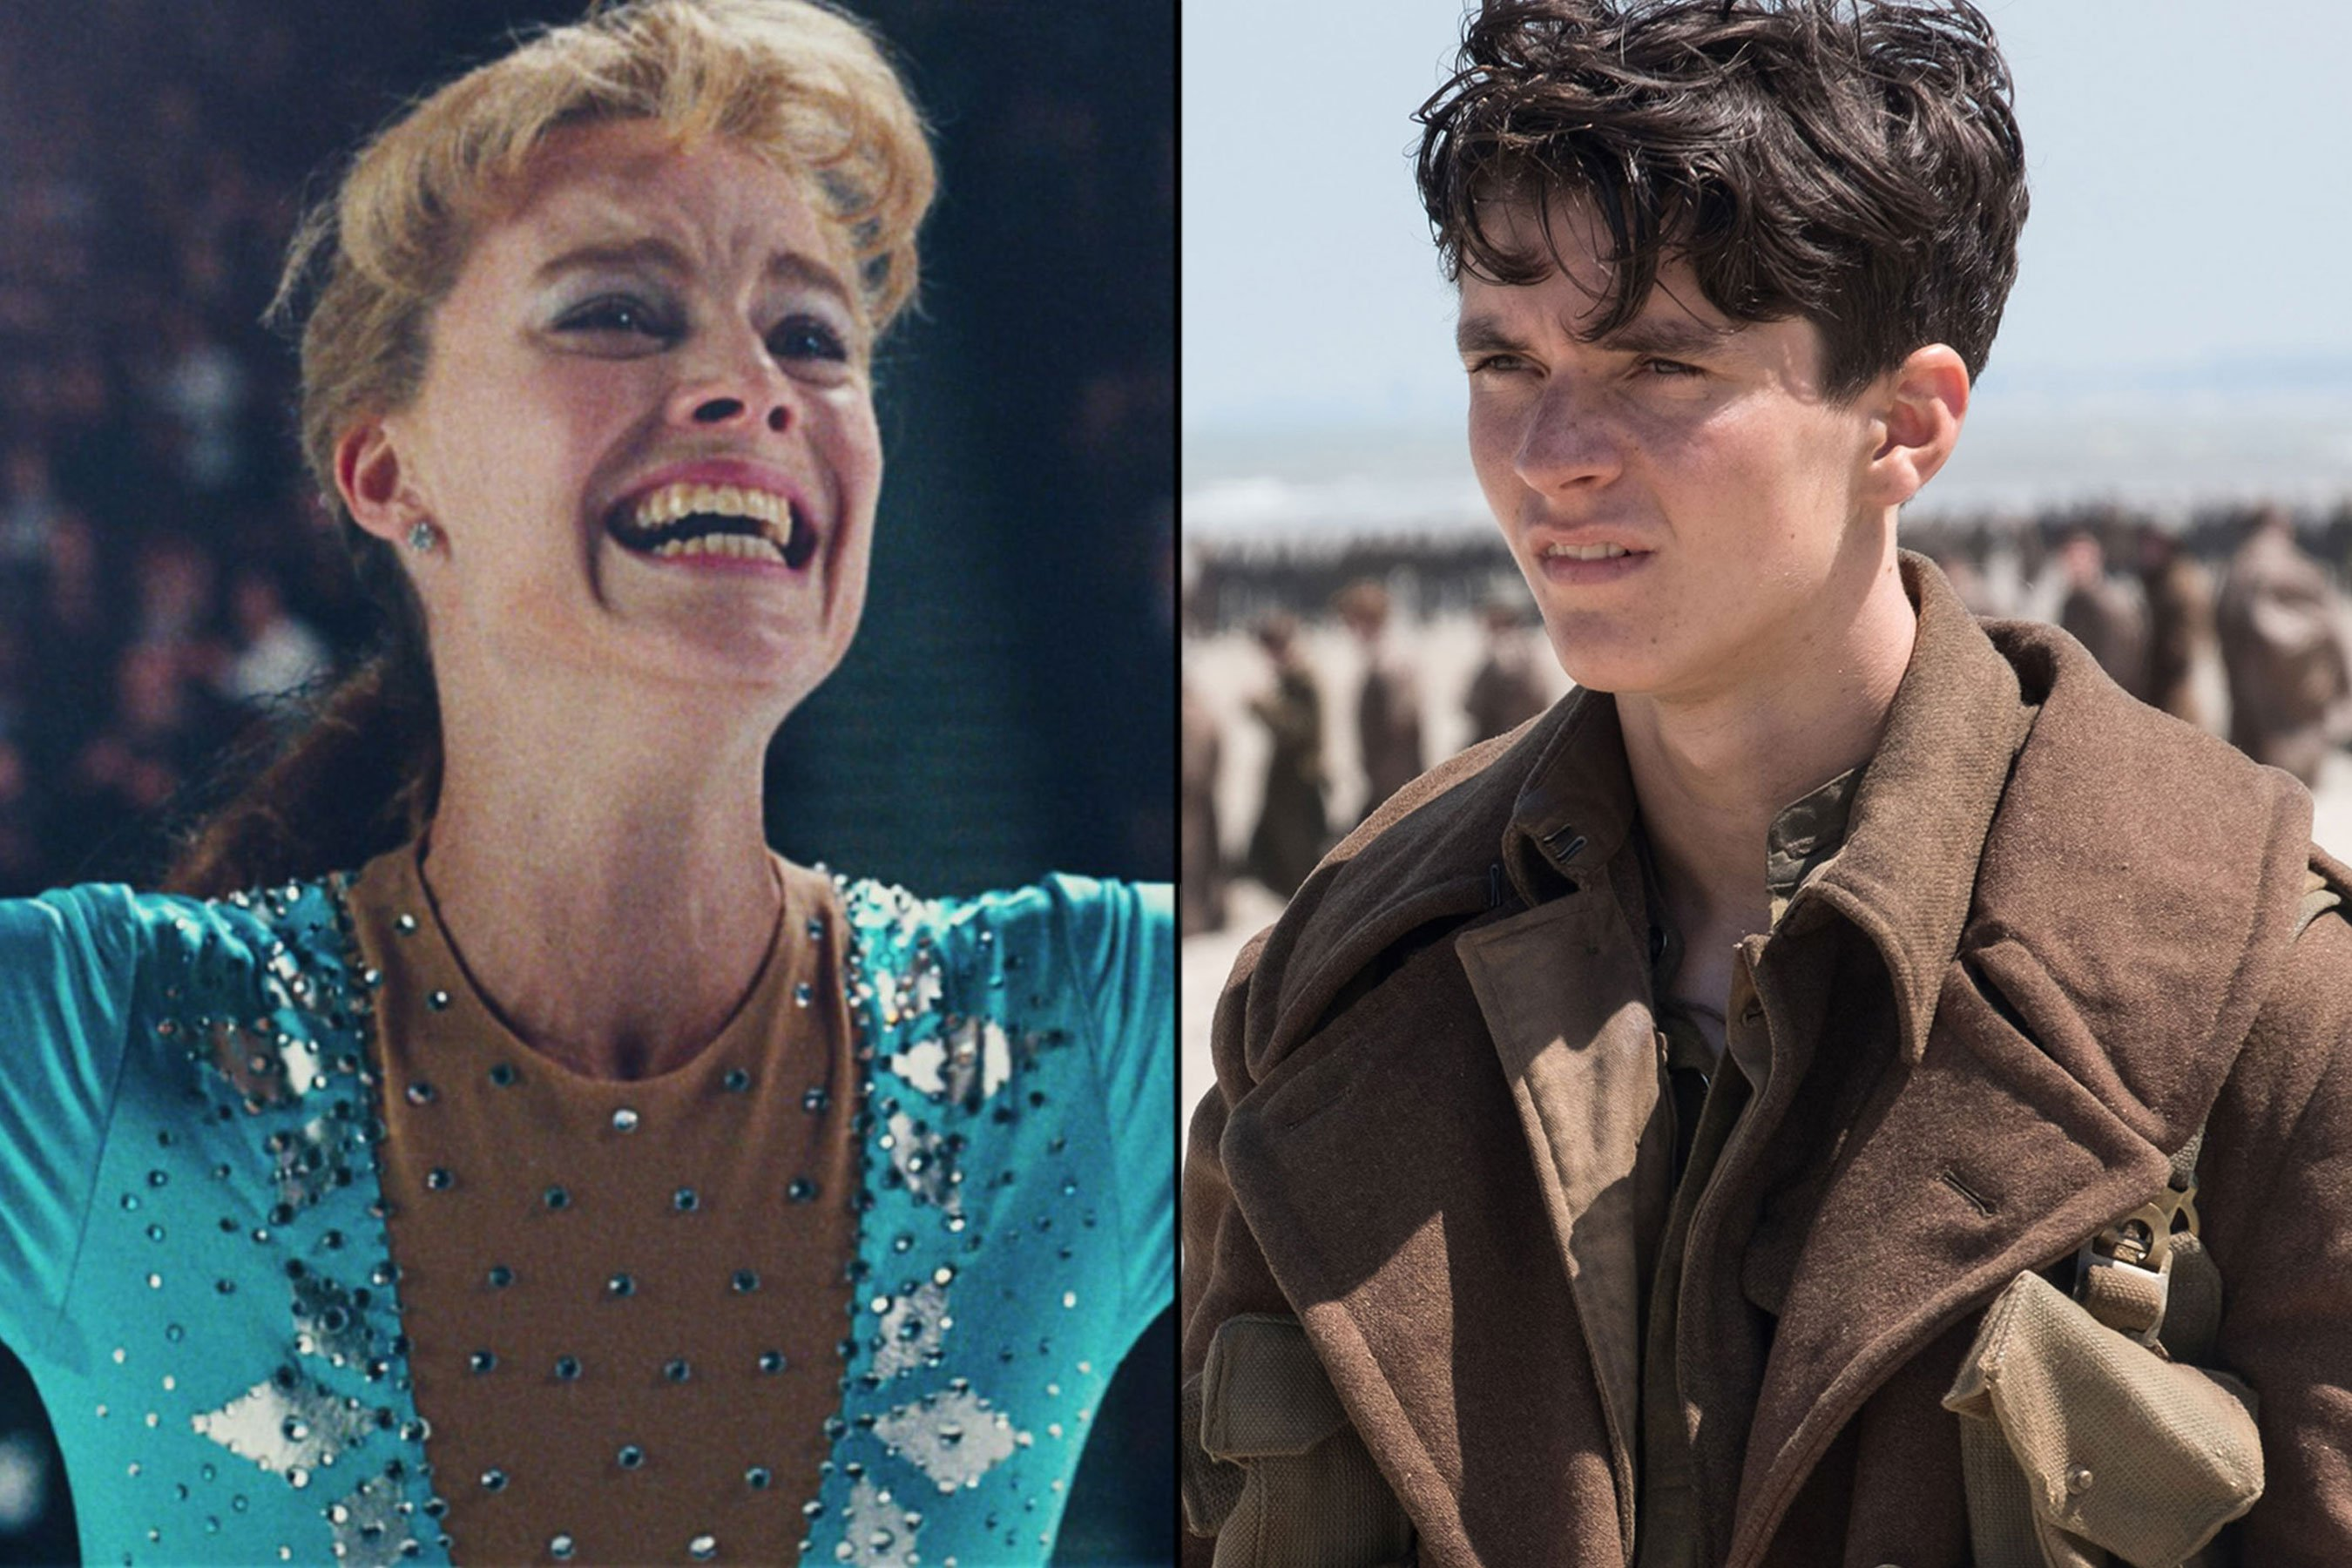 ACE Eddie Awards 2018: Dunkirk, I, Tonya win top honors